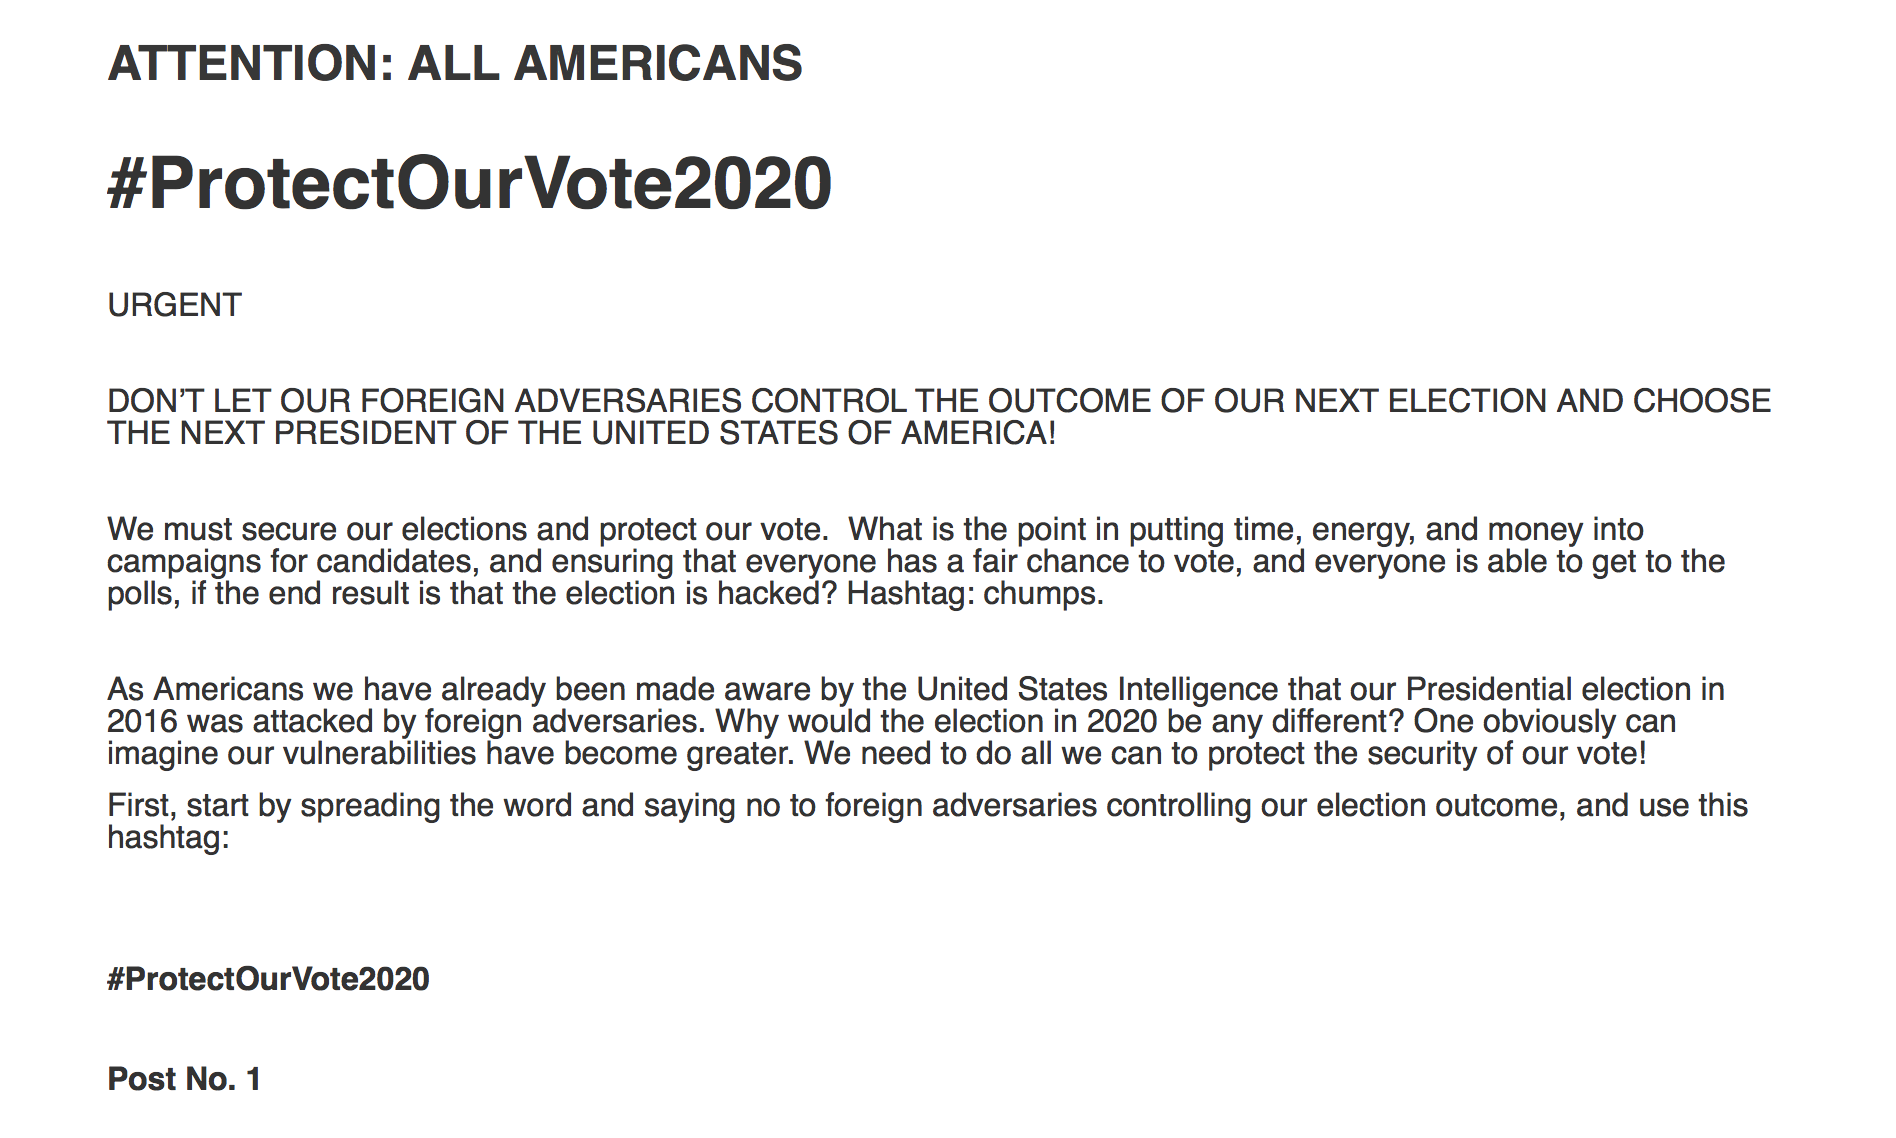 #ProtectOurVote2020 NonpartisanPeace Post 1.png